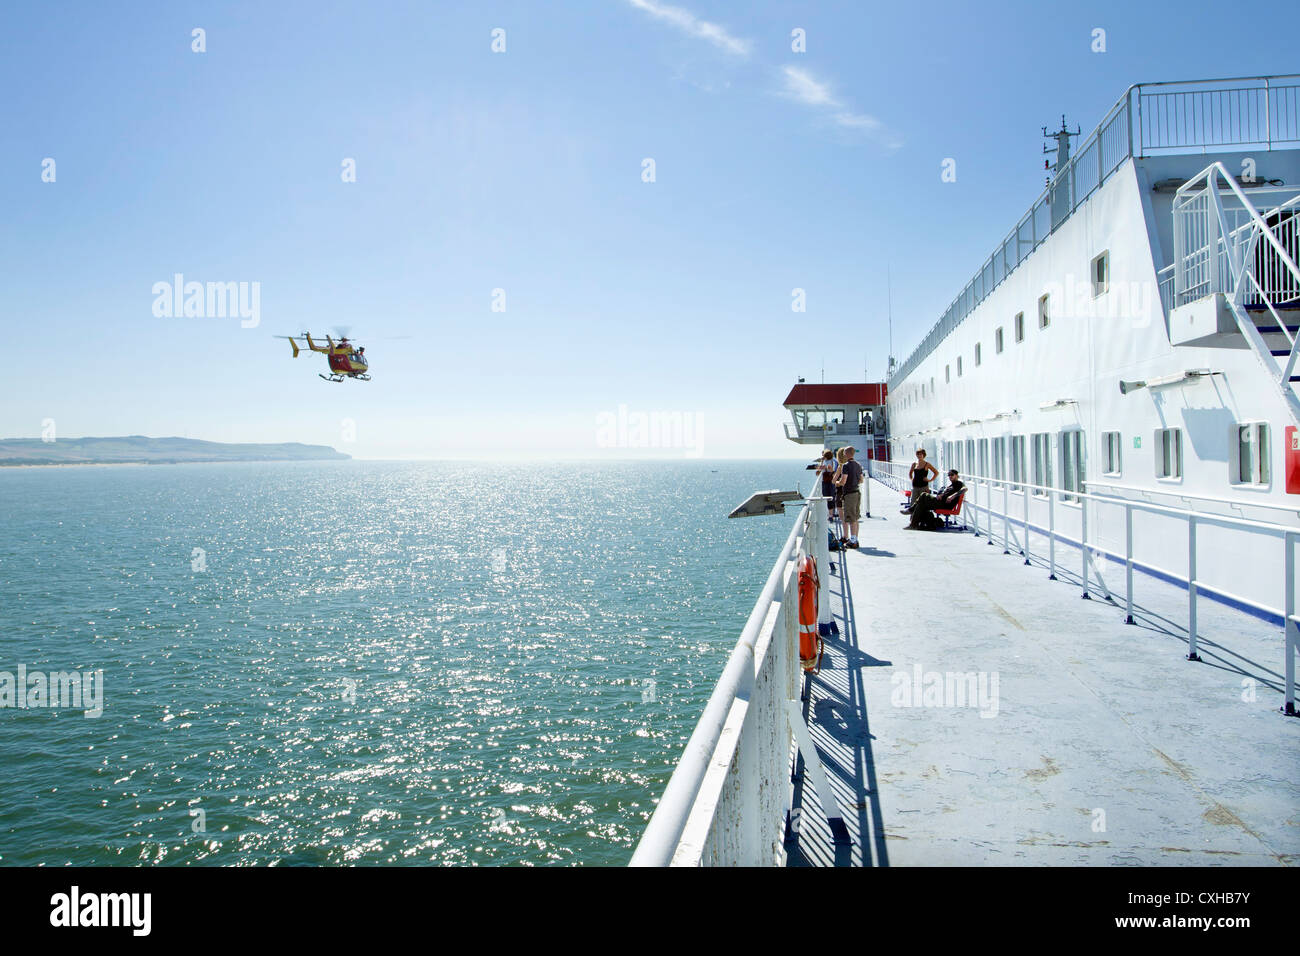 Civil protection French helicopter flies alongside a passenger ferry leaving Calais in France - Stock Image